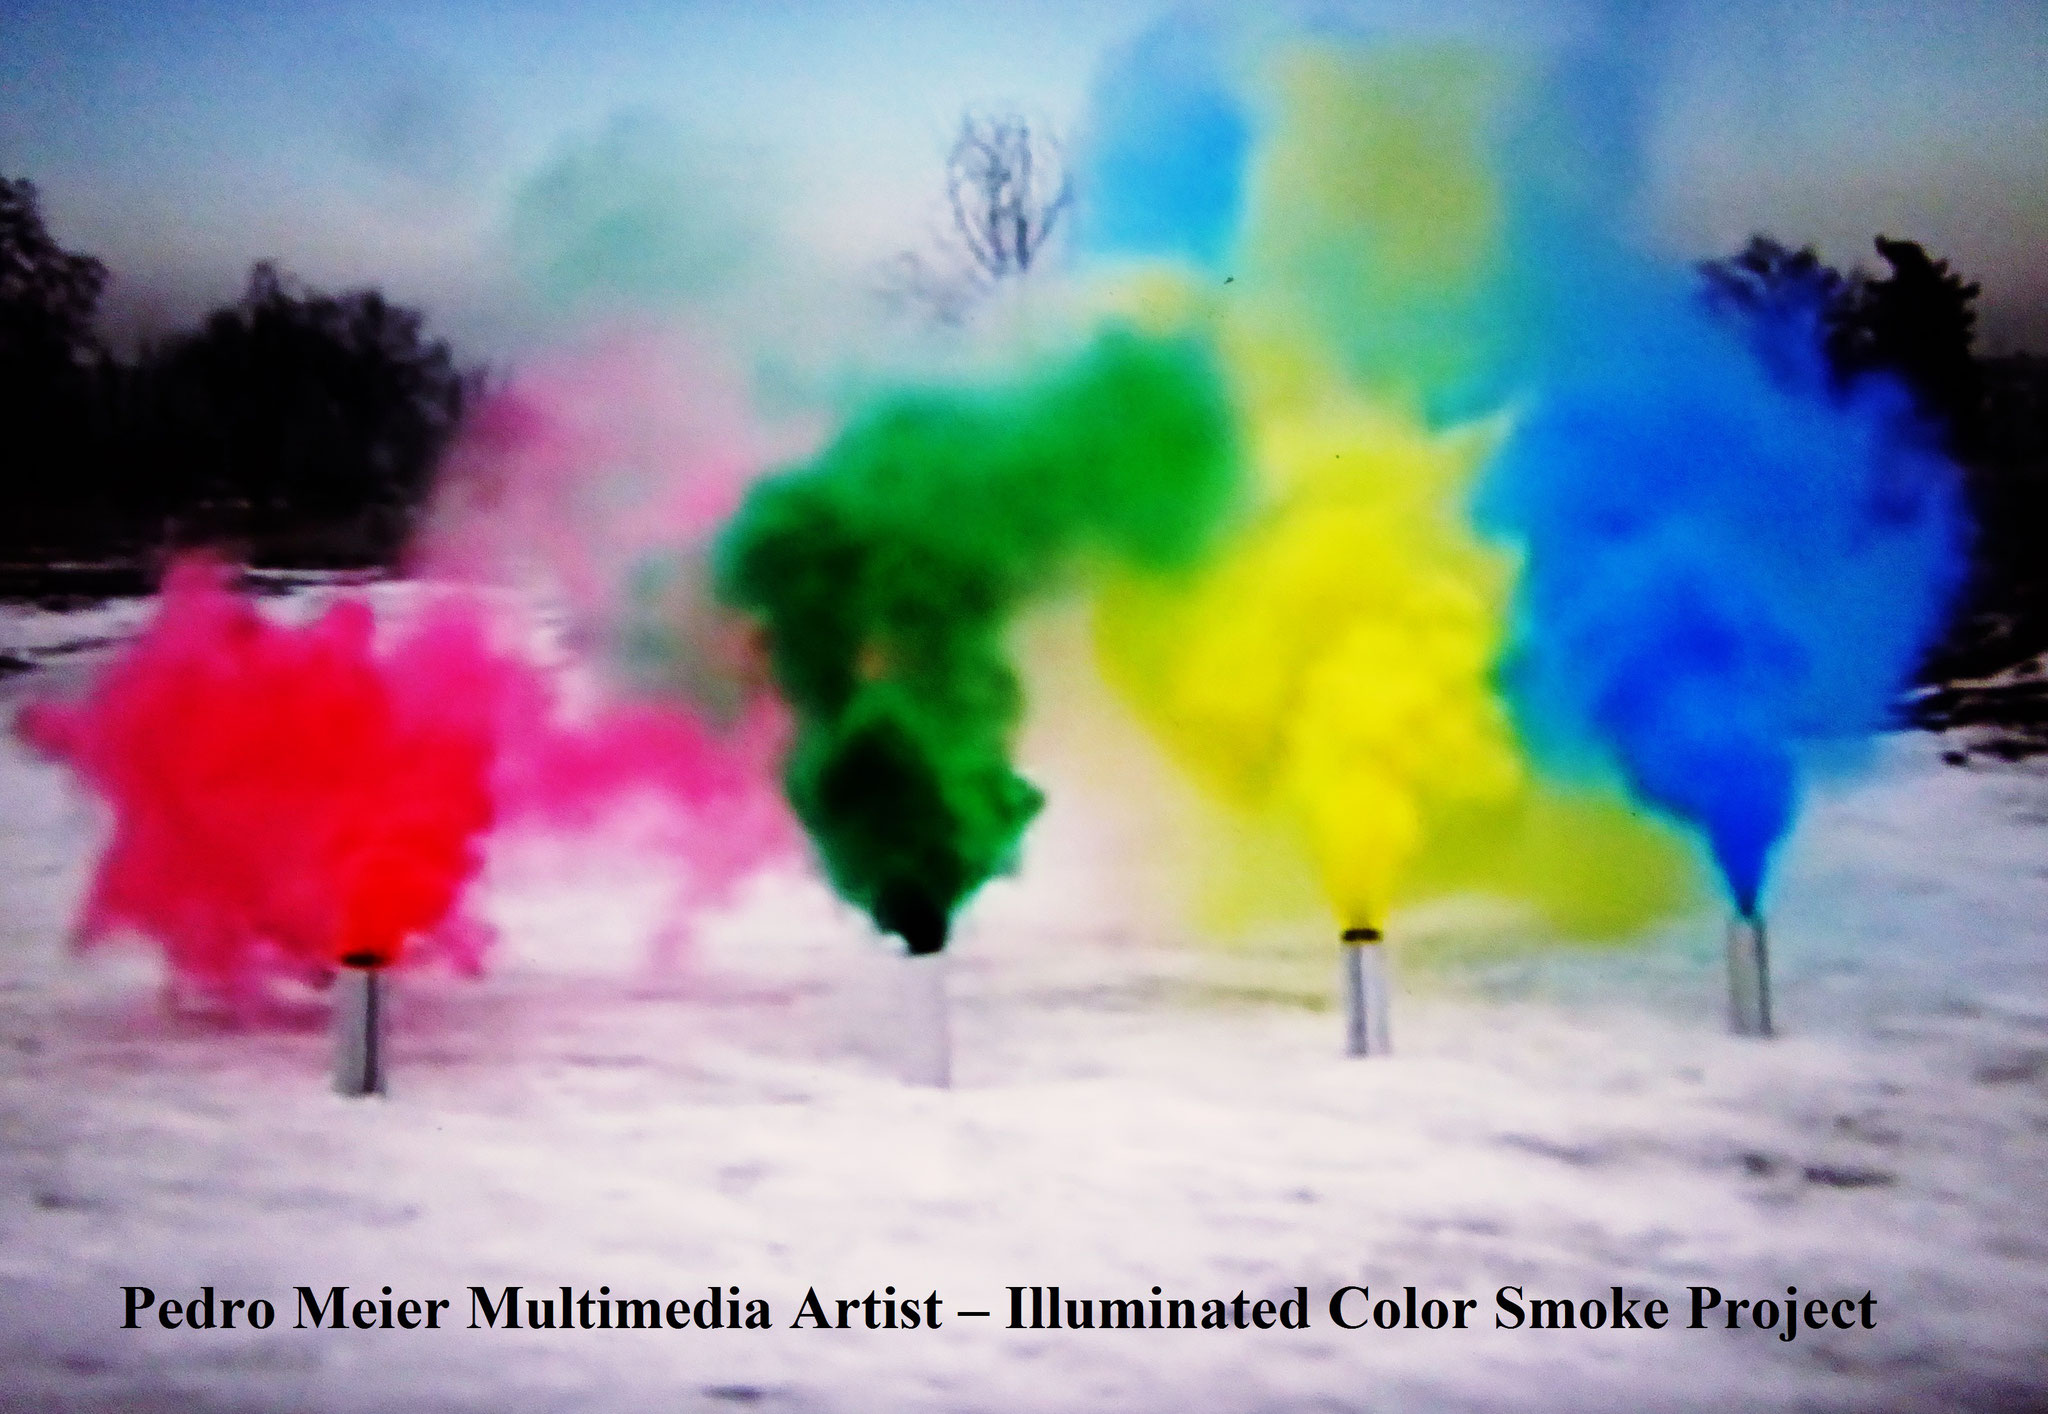 Illuminated Color Smoke Project Nr. 3 – by Pedro Meier Multimedia Artist 2017 – Niederbipp, Olten, Switzerland and Bangkok, Land art, minimal art, conceptual art, Earth art, spirituality – Member VISARTE, IAA AIAP UNESCO, Artforum, © P.Meier / ProLitteris